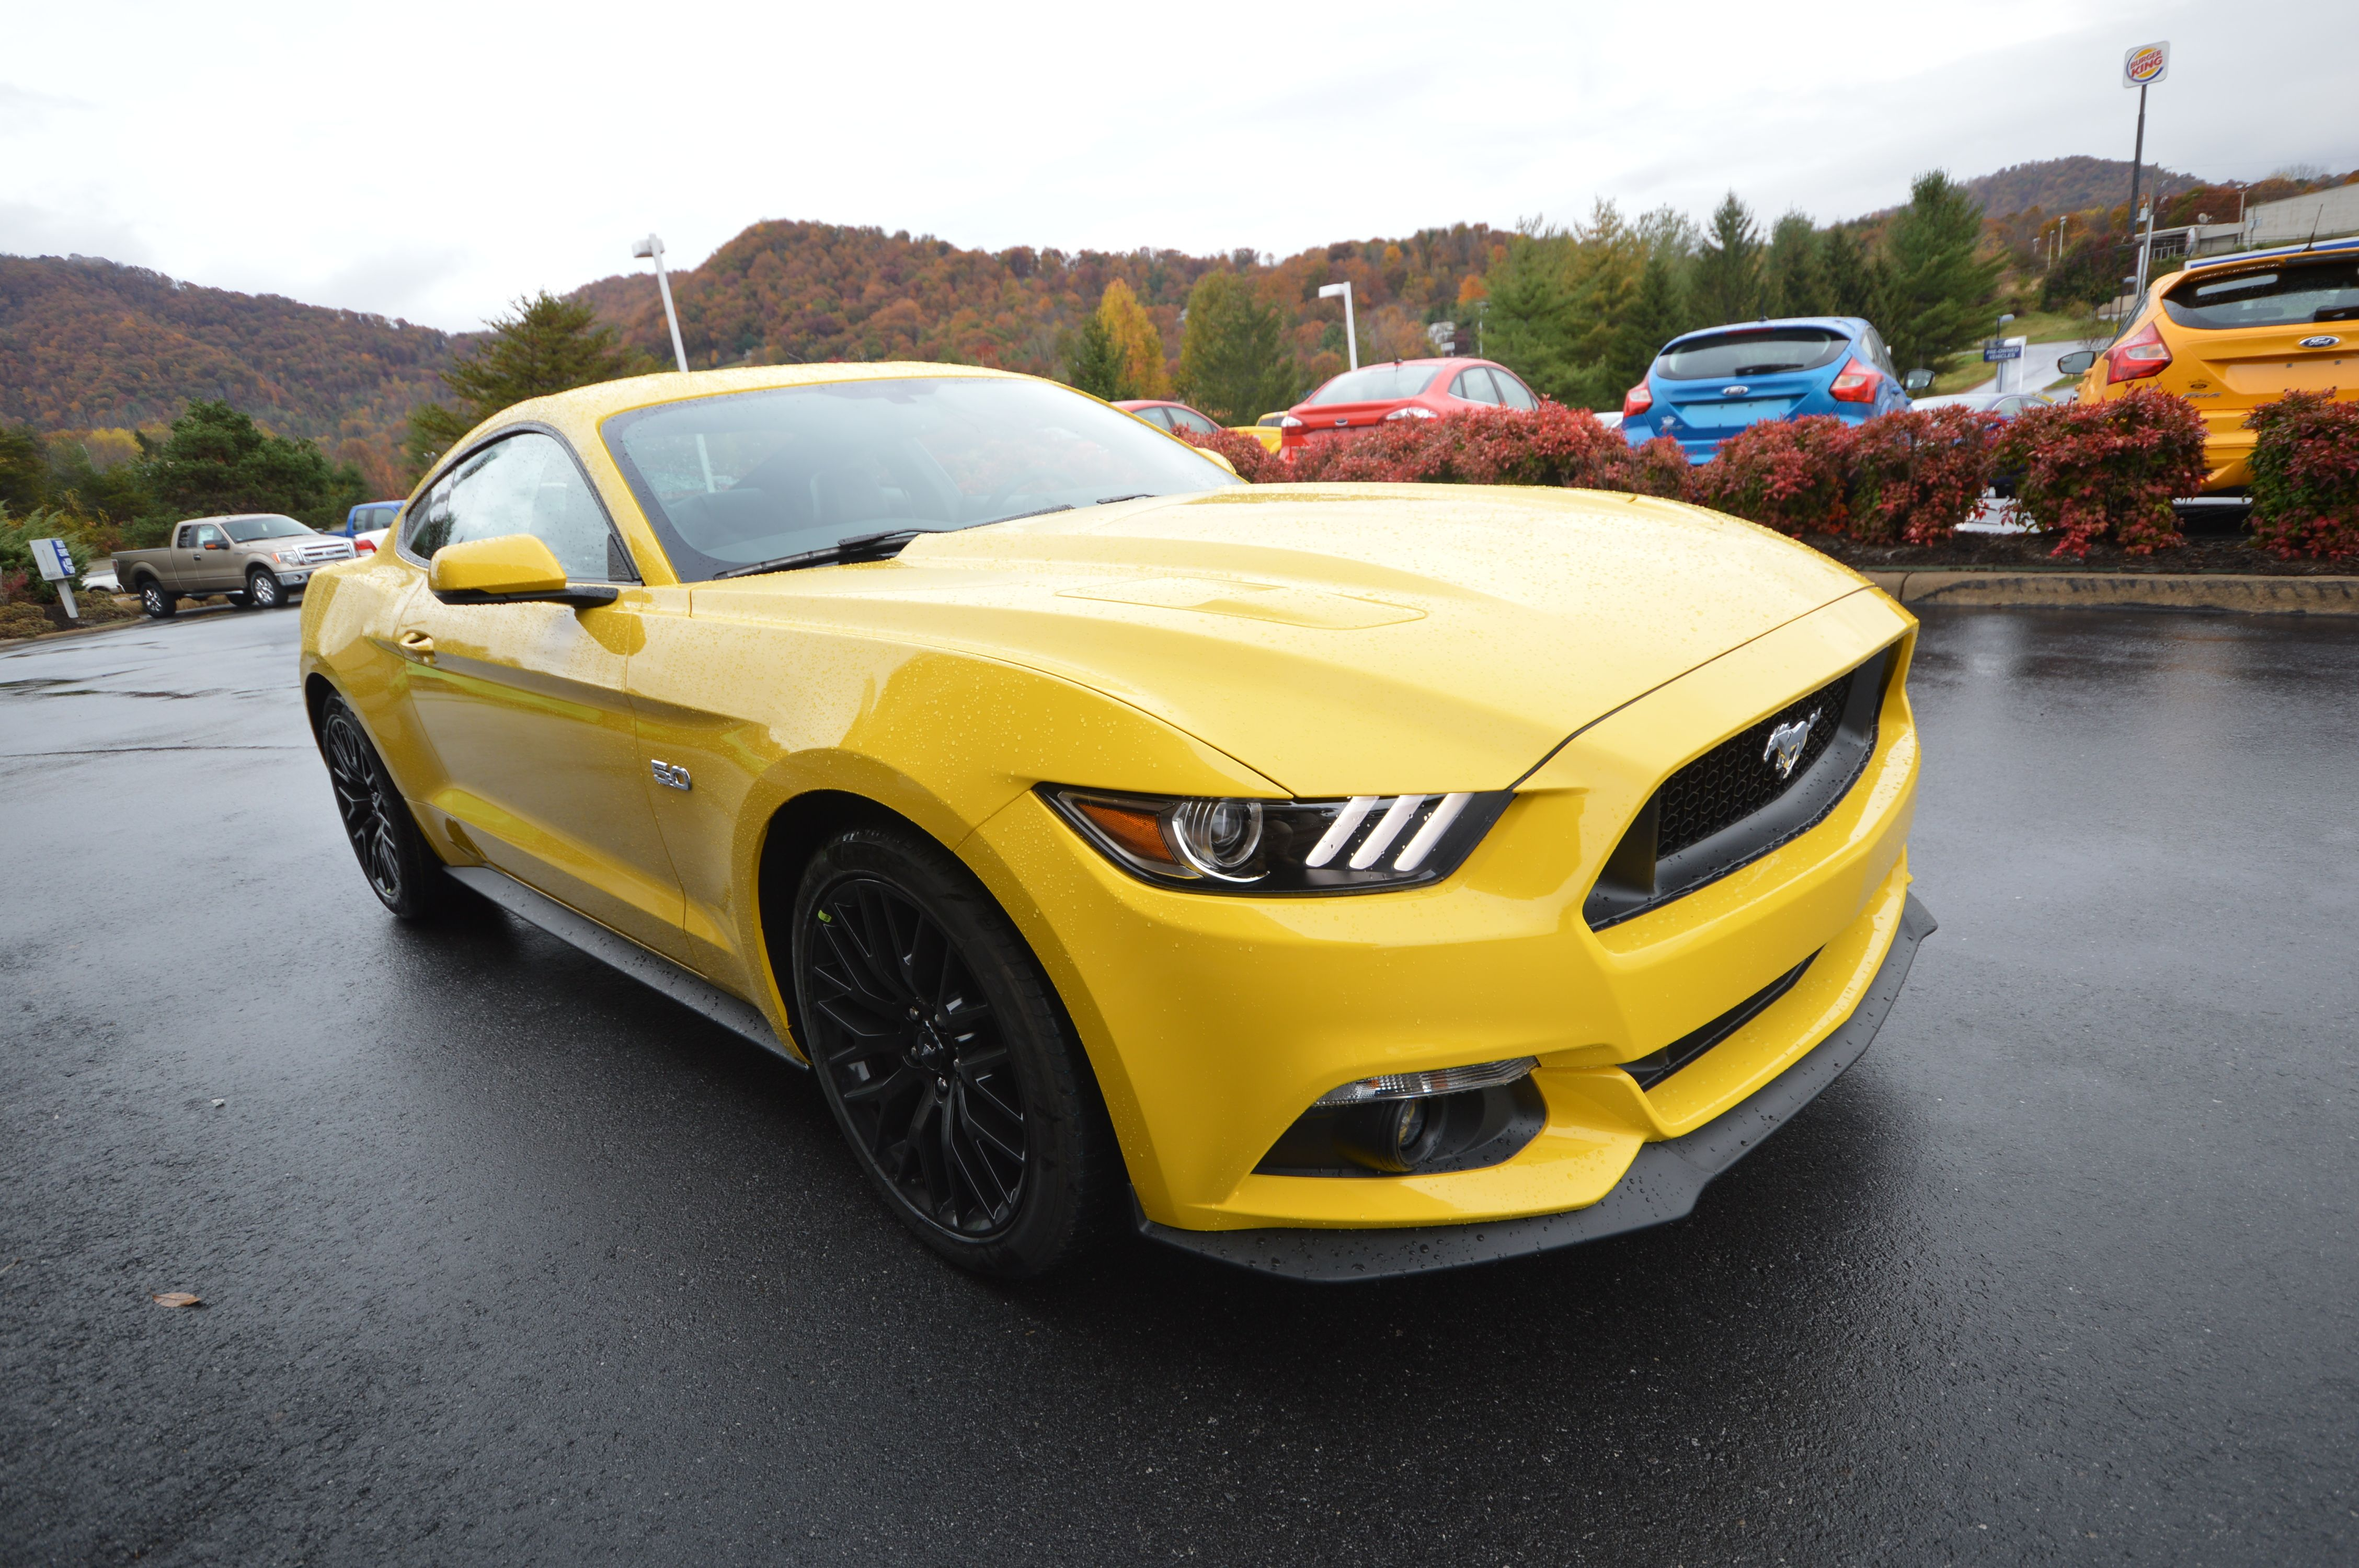 2015 Mustang Gt In Triple Yellow Ford Mustang Shelby Cobra Ford Mustang 2015 Mustang Gt